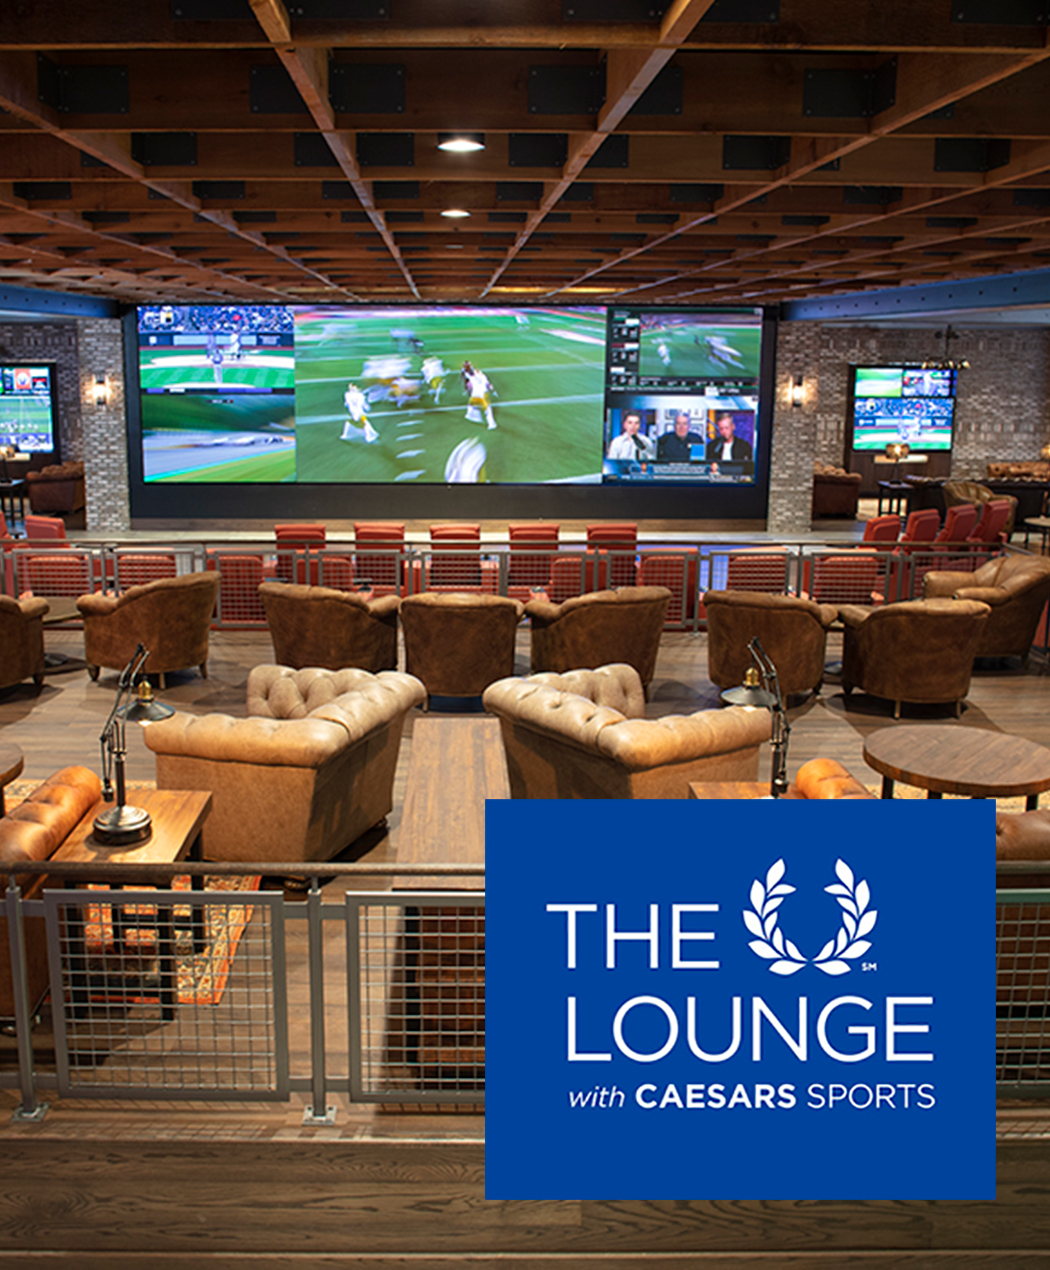 The Lounge with CaesarsSports